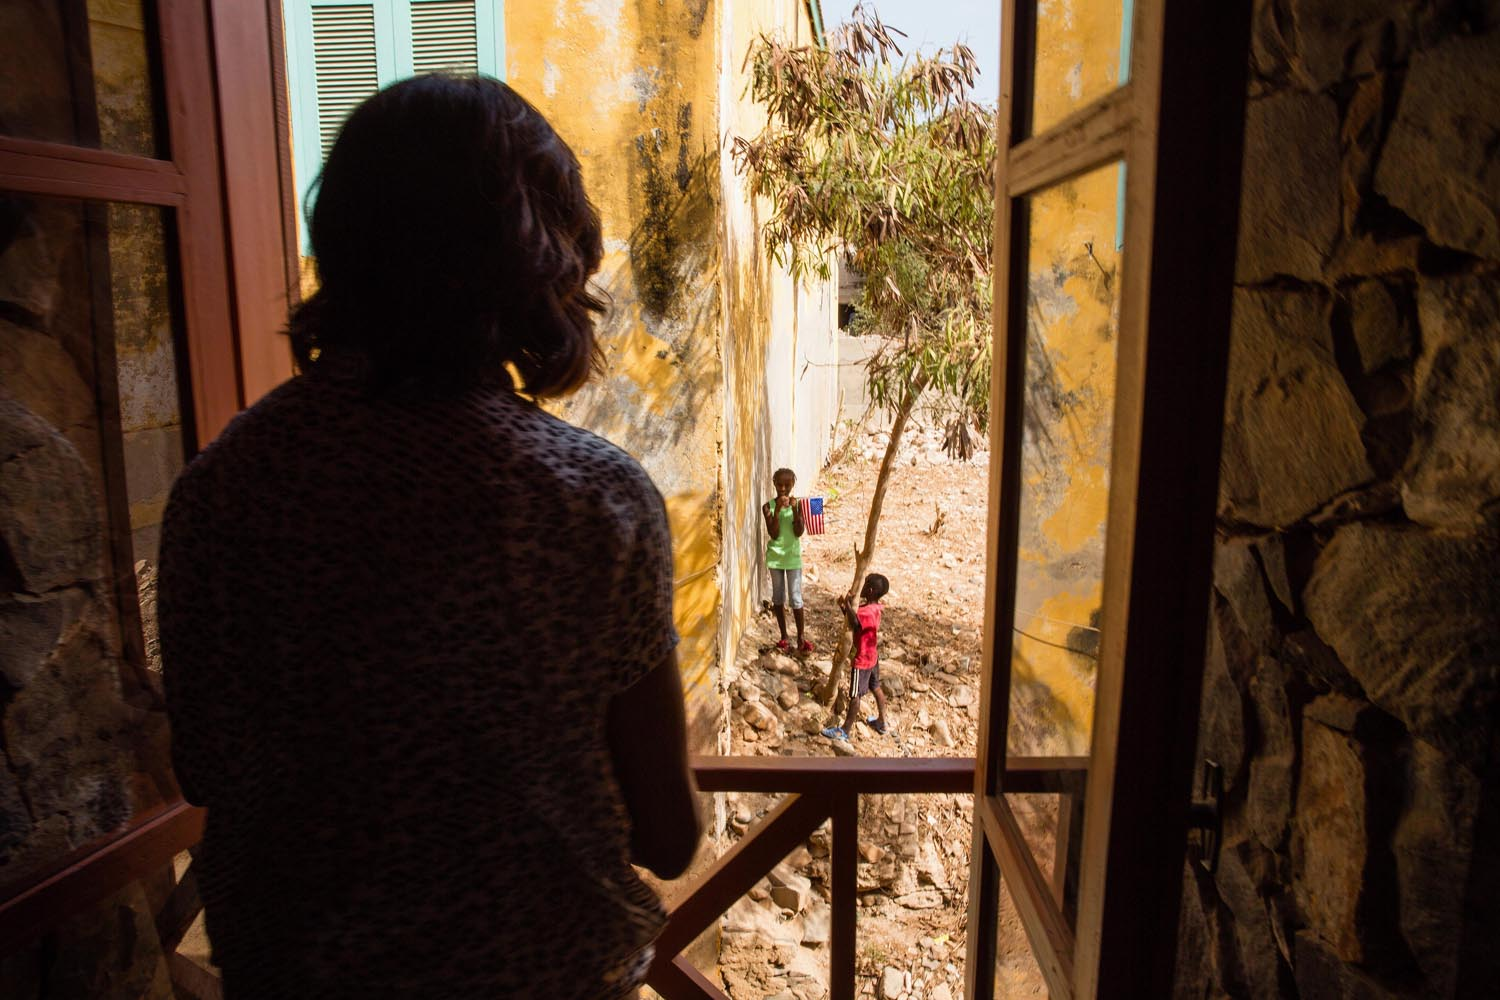 June 27, 2013. First Lady Michelle Obama looks out a window at local children during her visit to a cultural center on Gorée Island, Senegal.